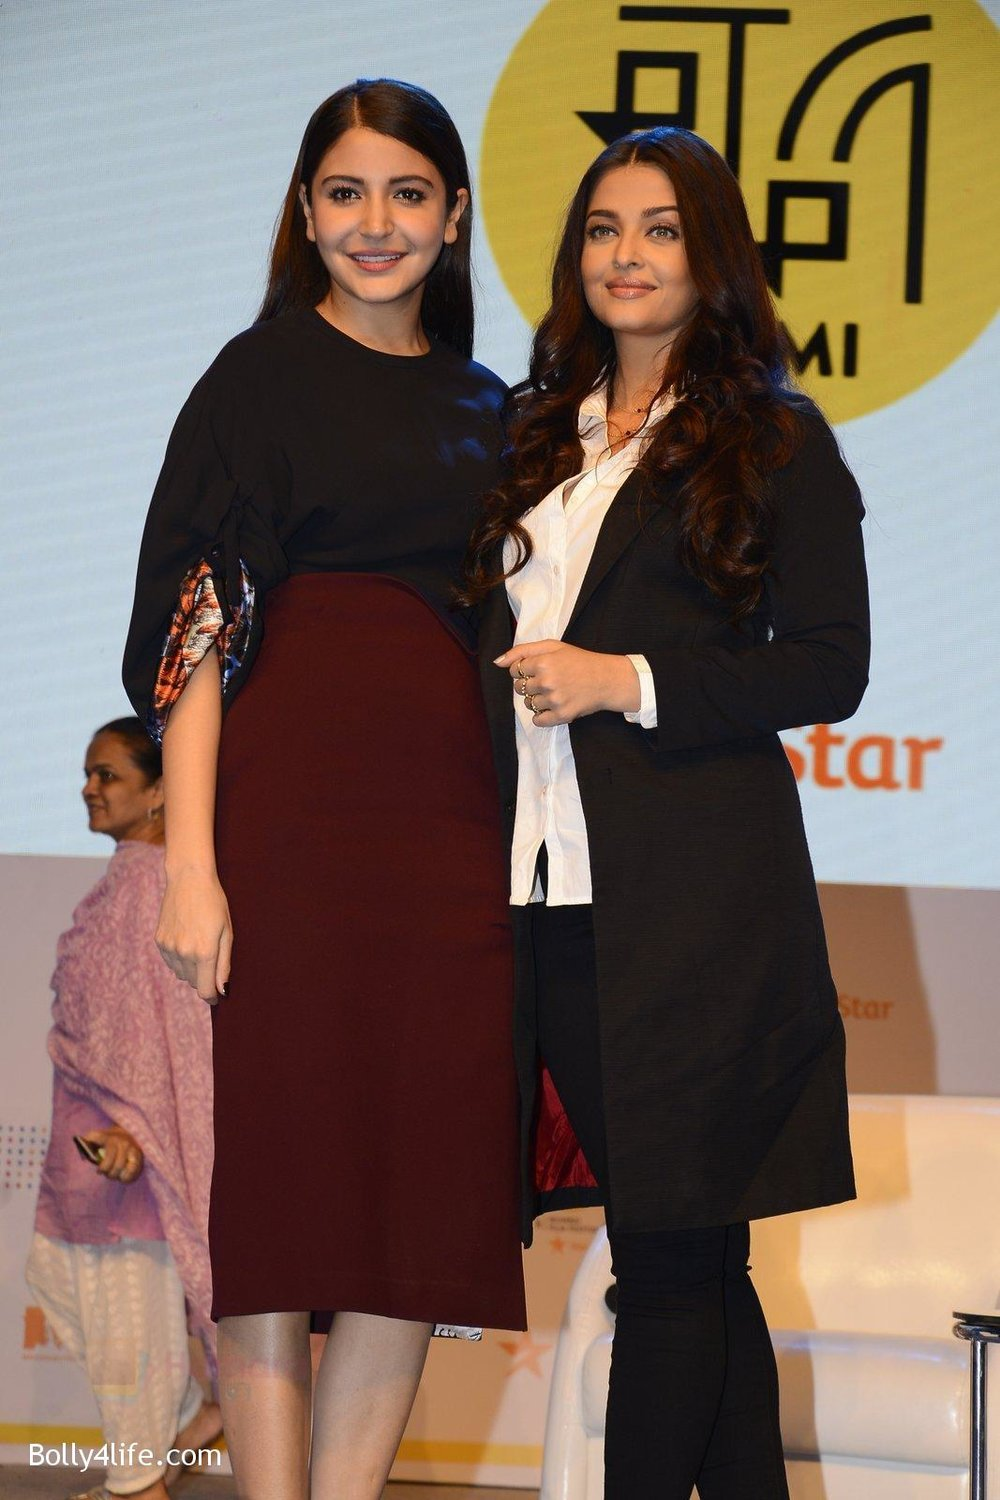 Anushka-Sharma-Aishwarya-Rai-talk-about-their-movie-Ae-Dil-Hai-Mushkil-during-the-Jio-MAMI-18th-Mumbai-Film-Festival-with-star-on-21st-Oct-2016-17.jpg